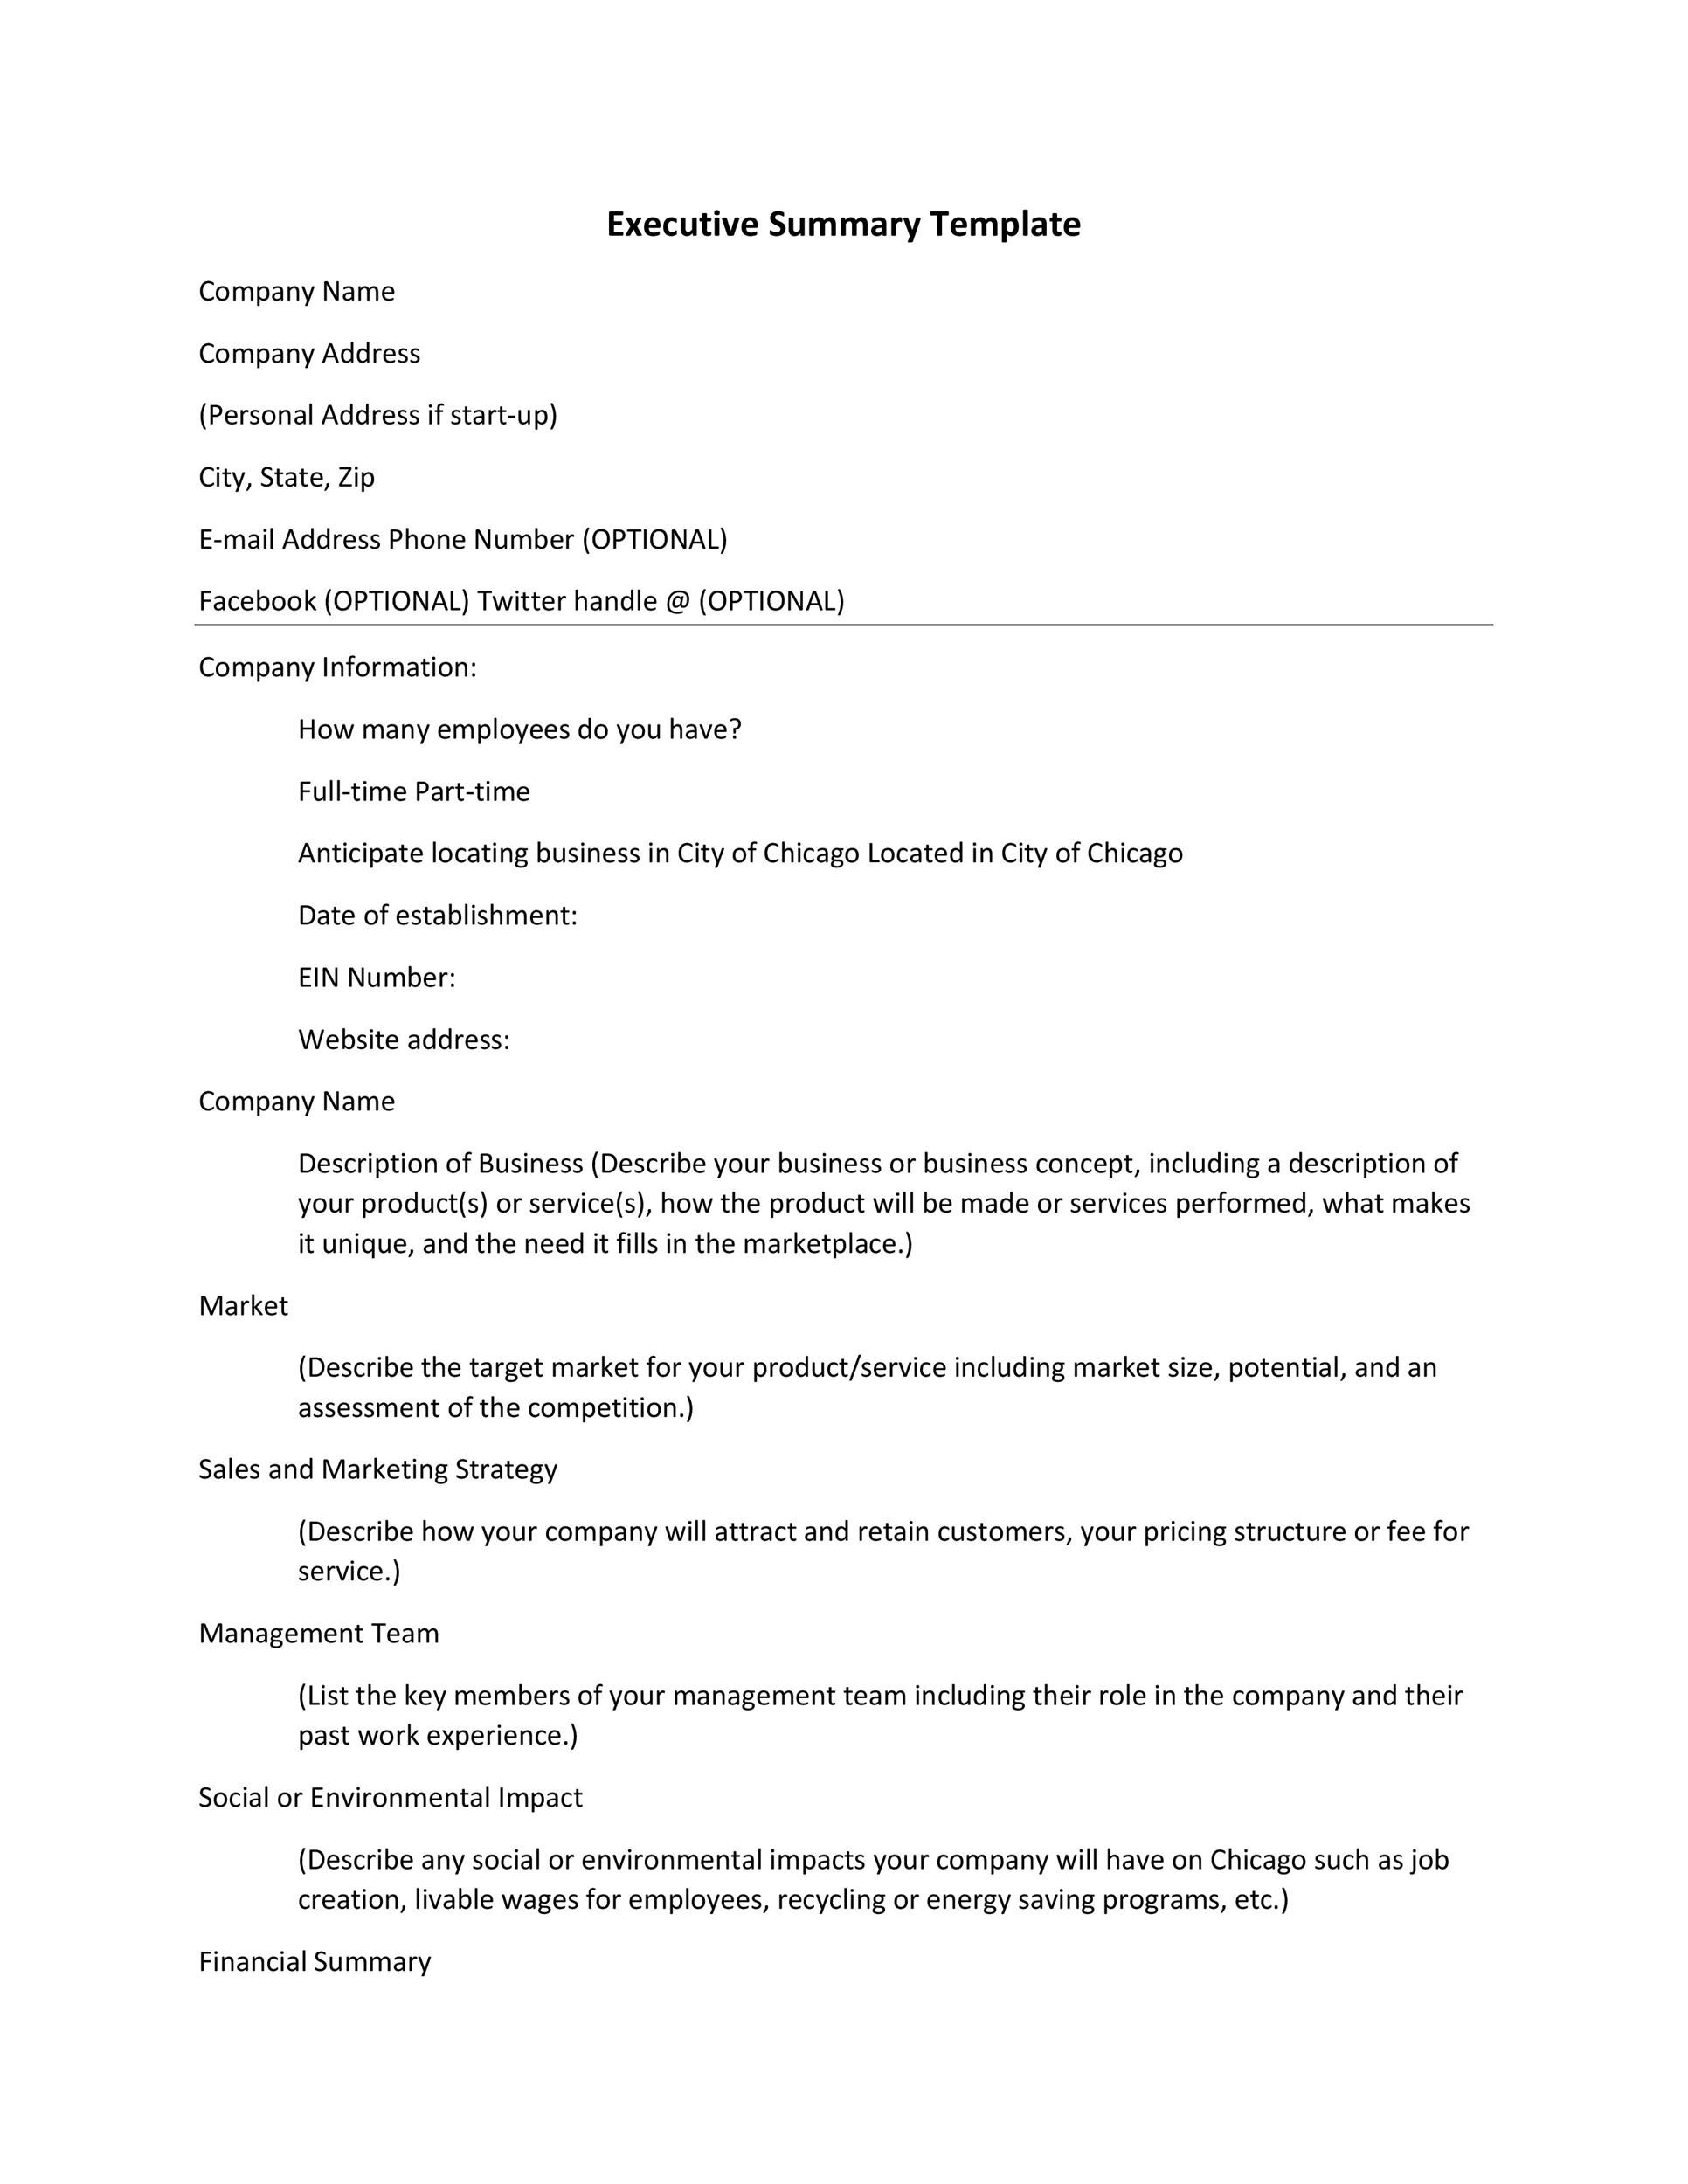 Executive Summary Templates  Management Summary Template